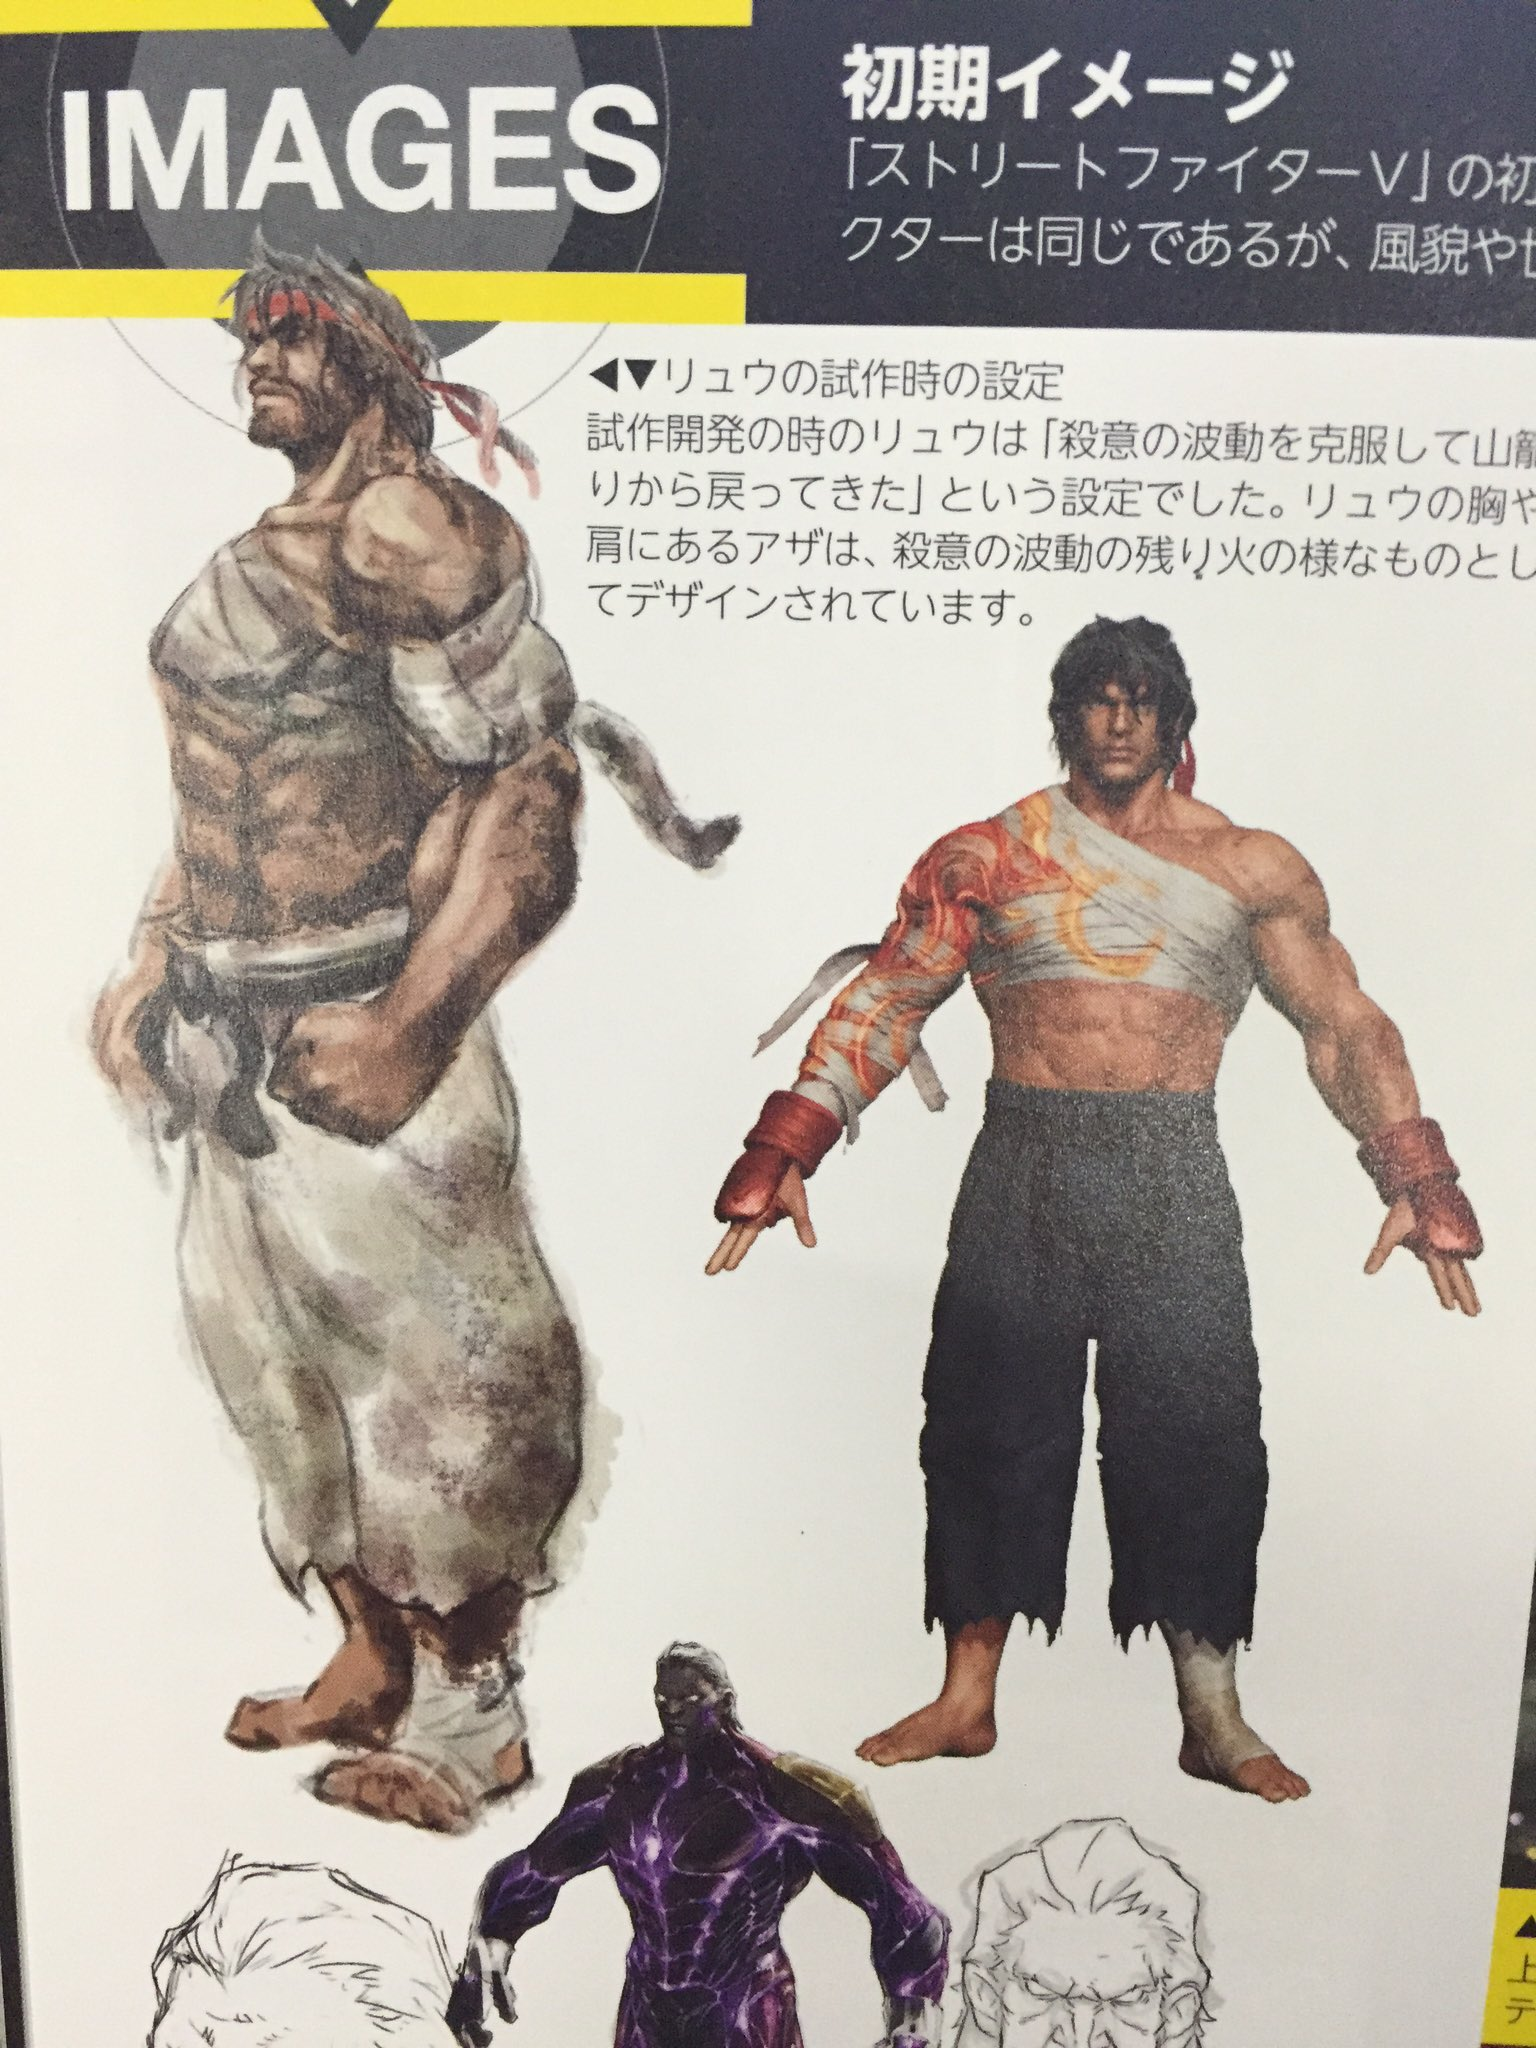 Street Fighter 5 Characters Looked Very Different In Their Concept